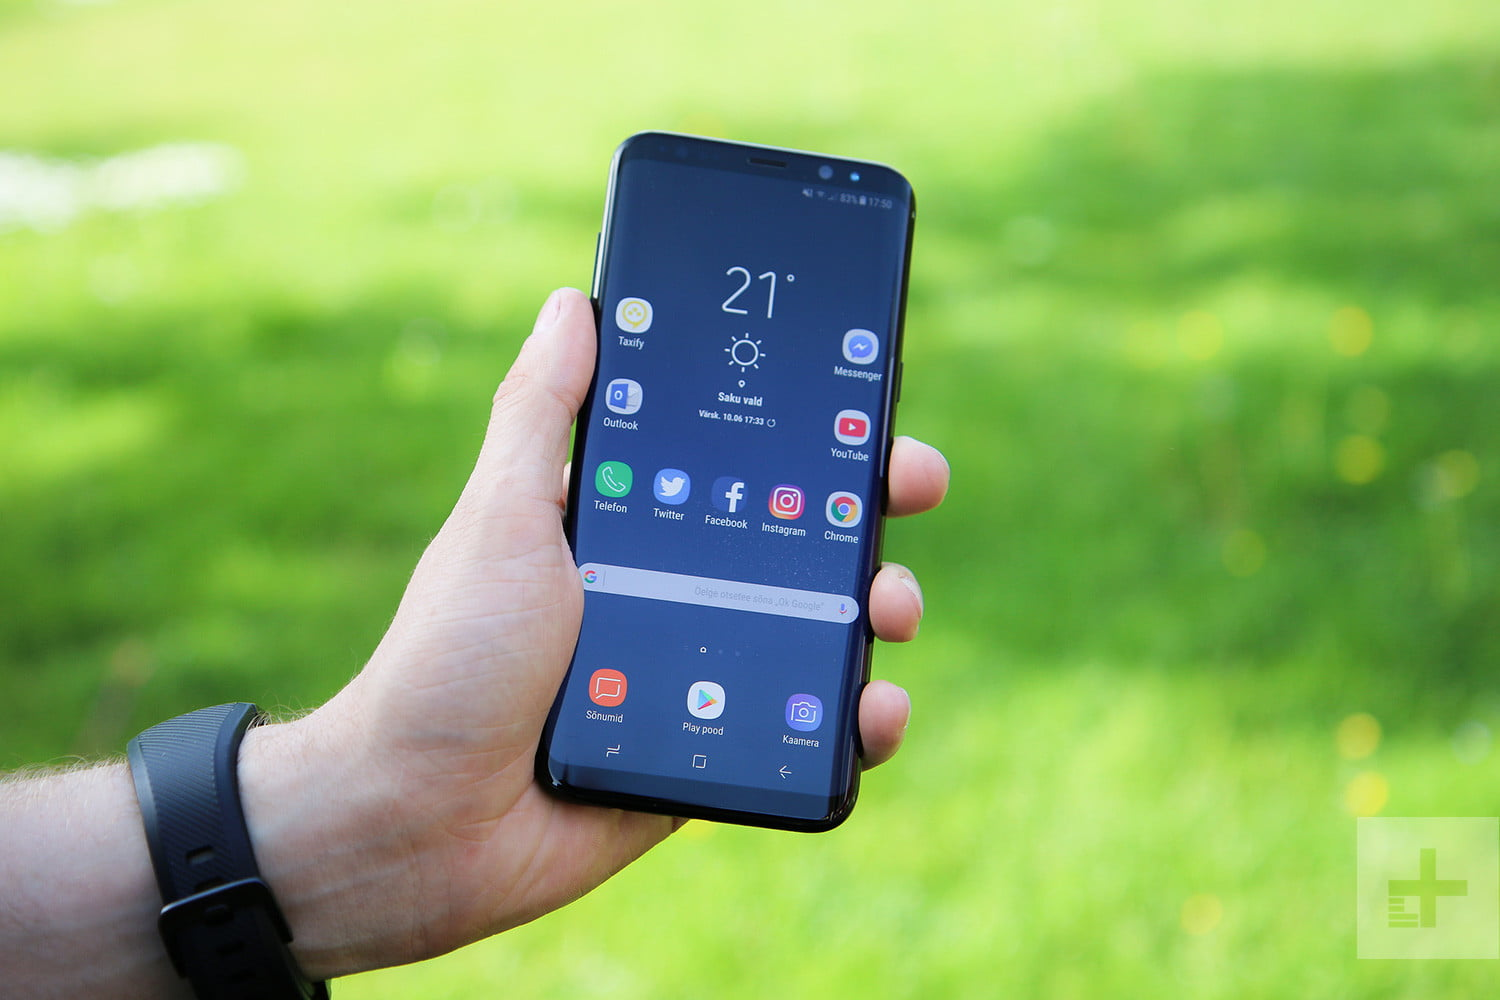 The Samsung Galaxy S8 Plus is only $422 on Amazon for Labor Day